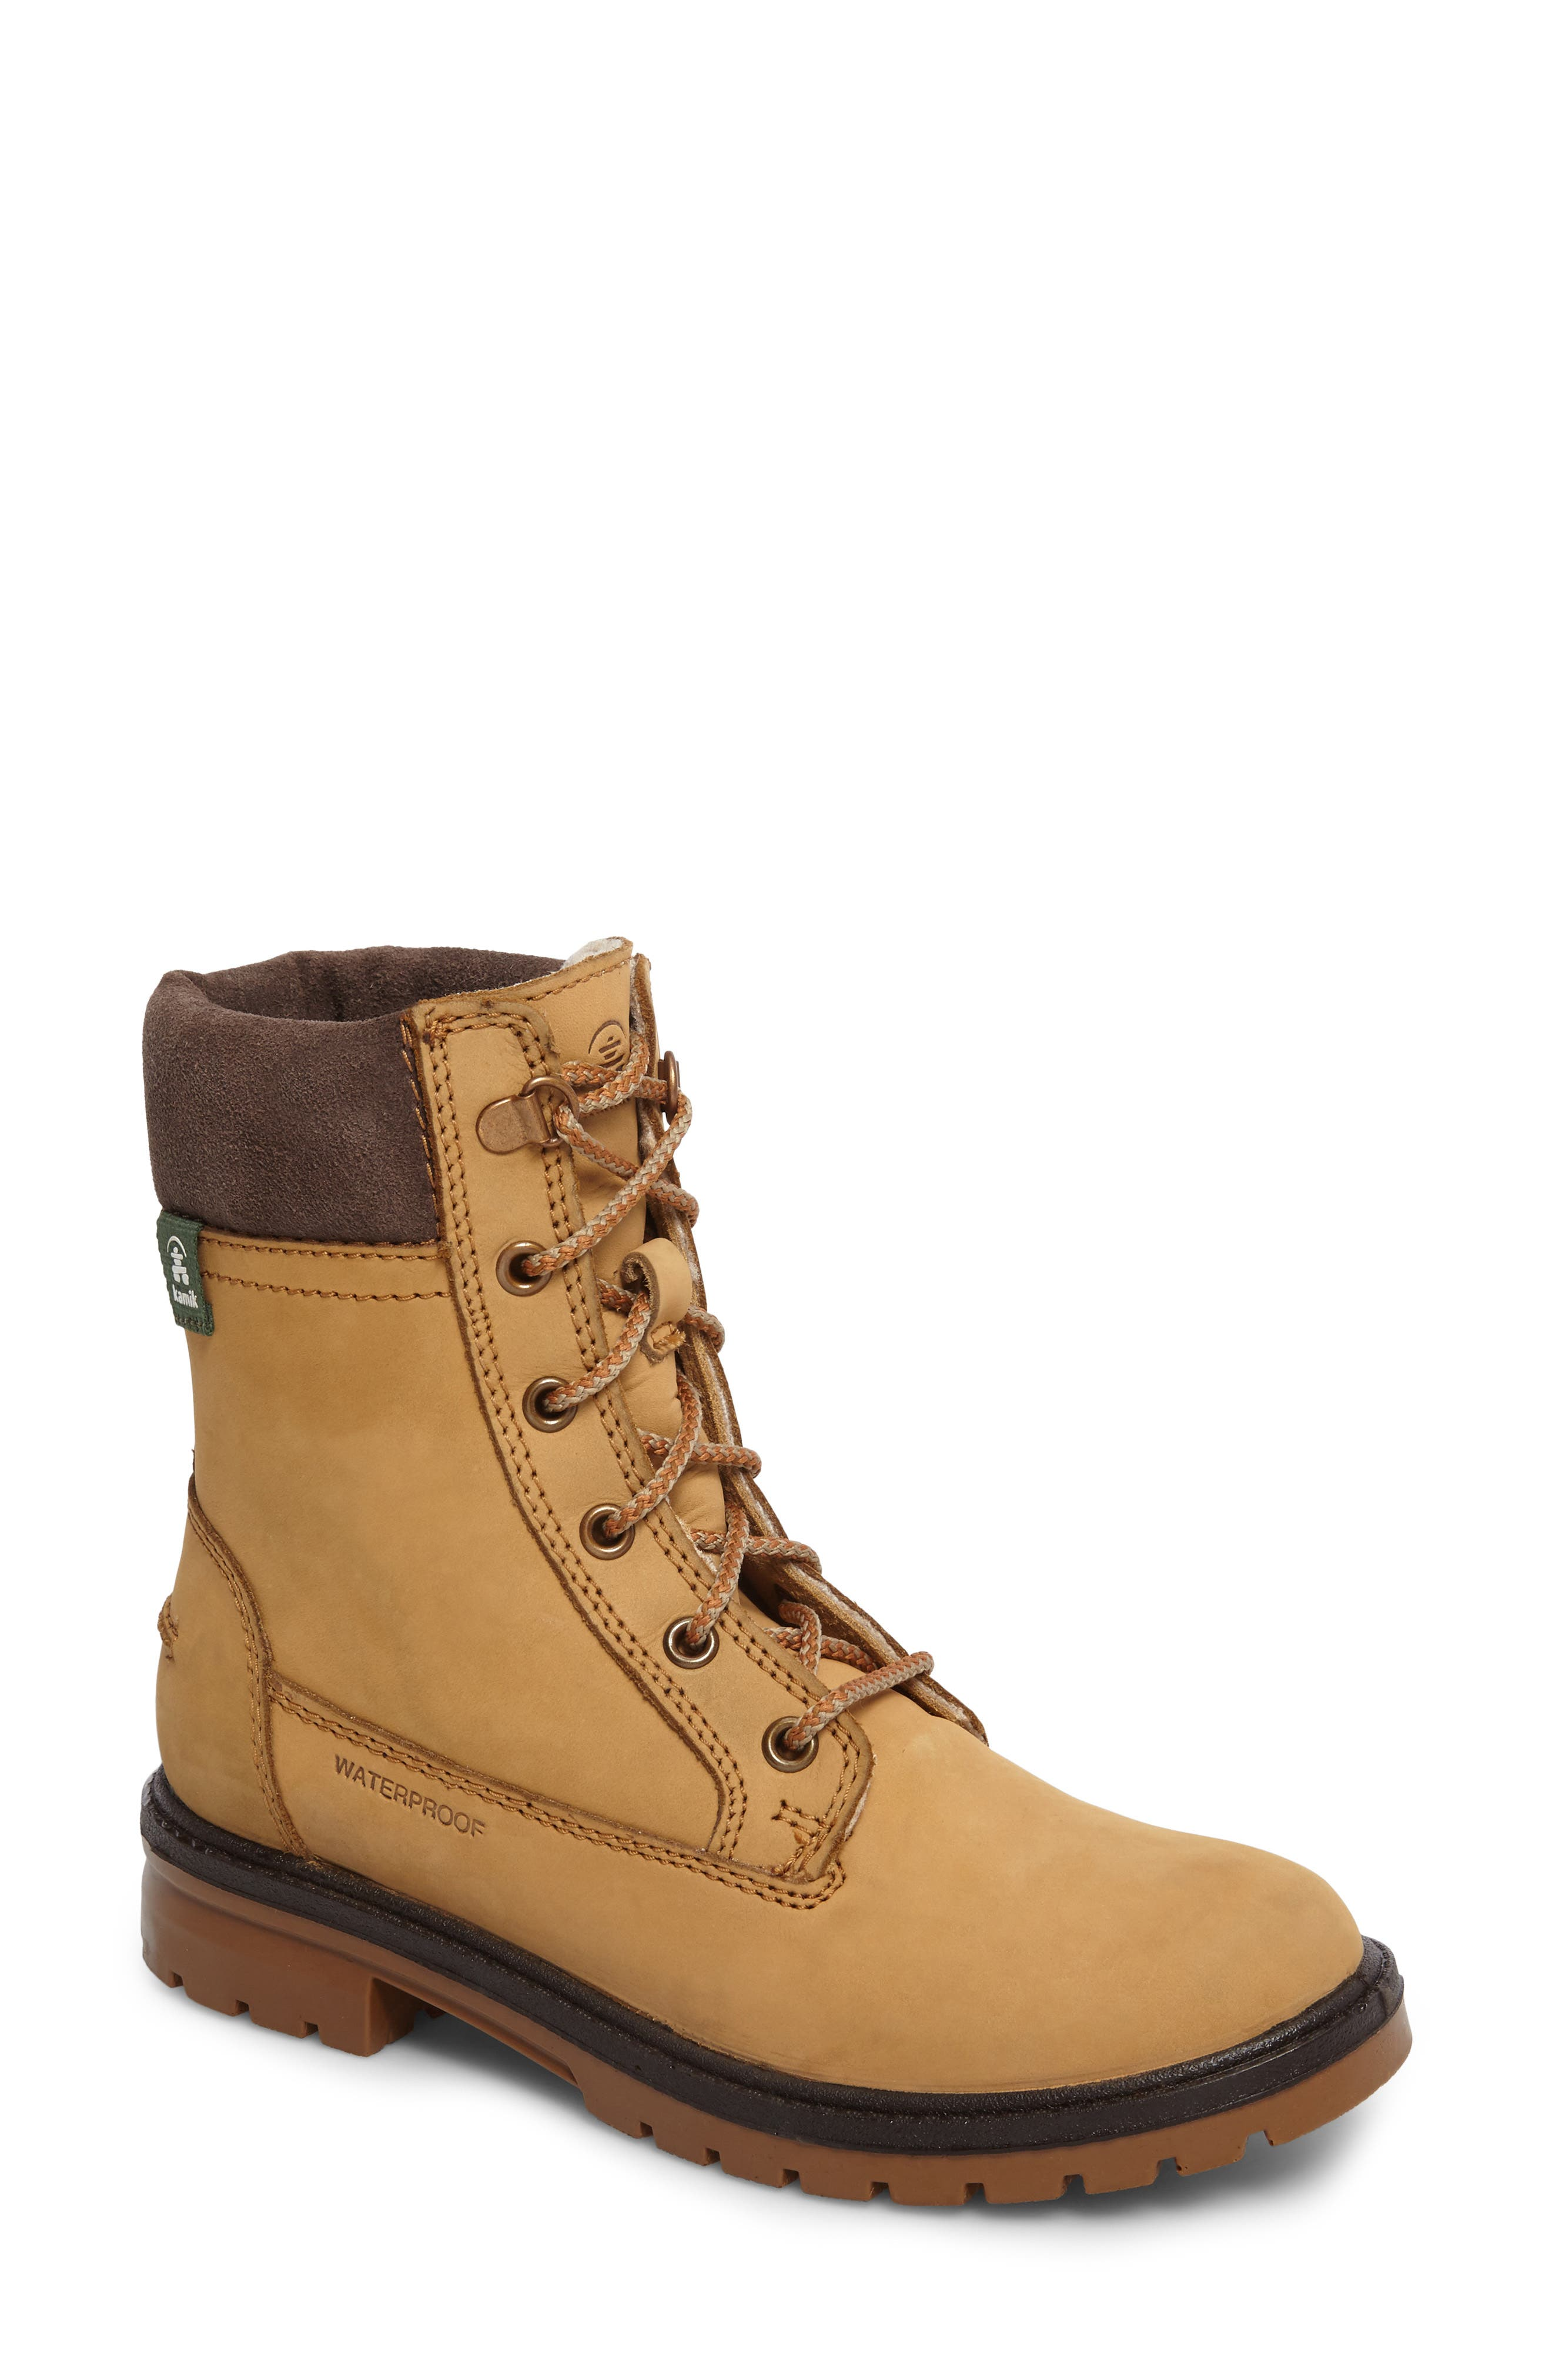 Rogue 5 Waterproof Boot,                             Main thumbnail 1, color,                             Honey Leather